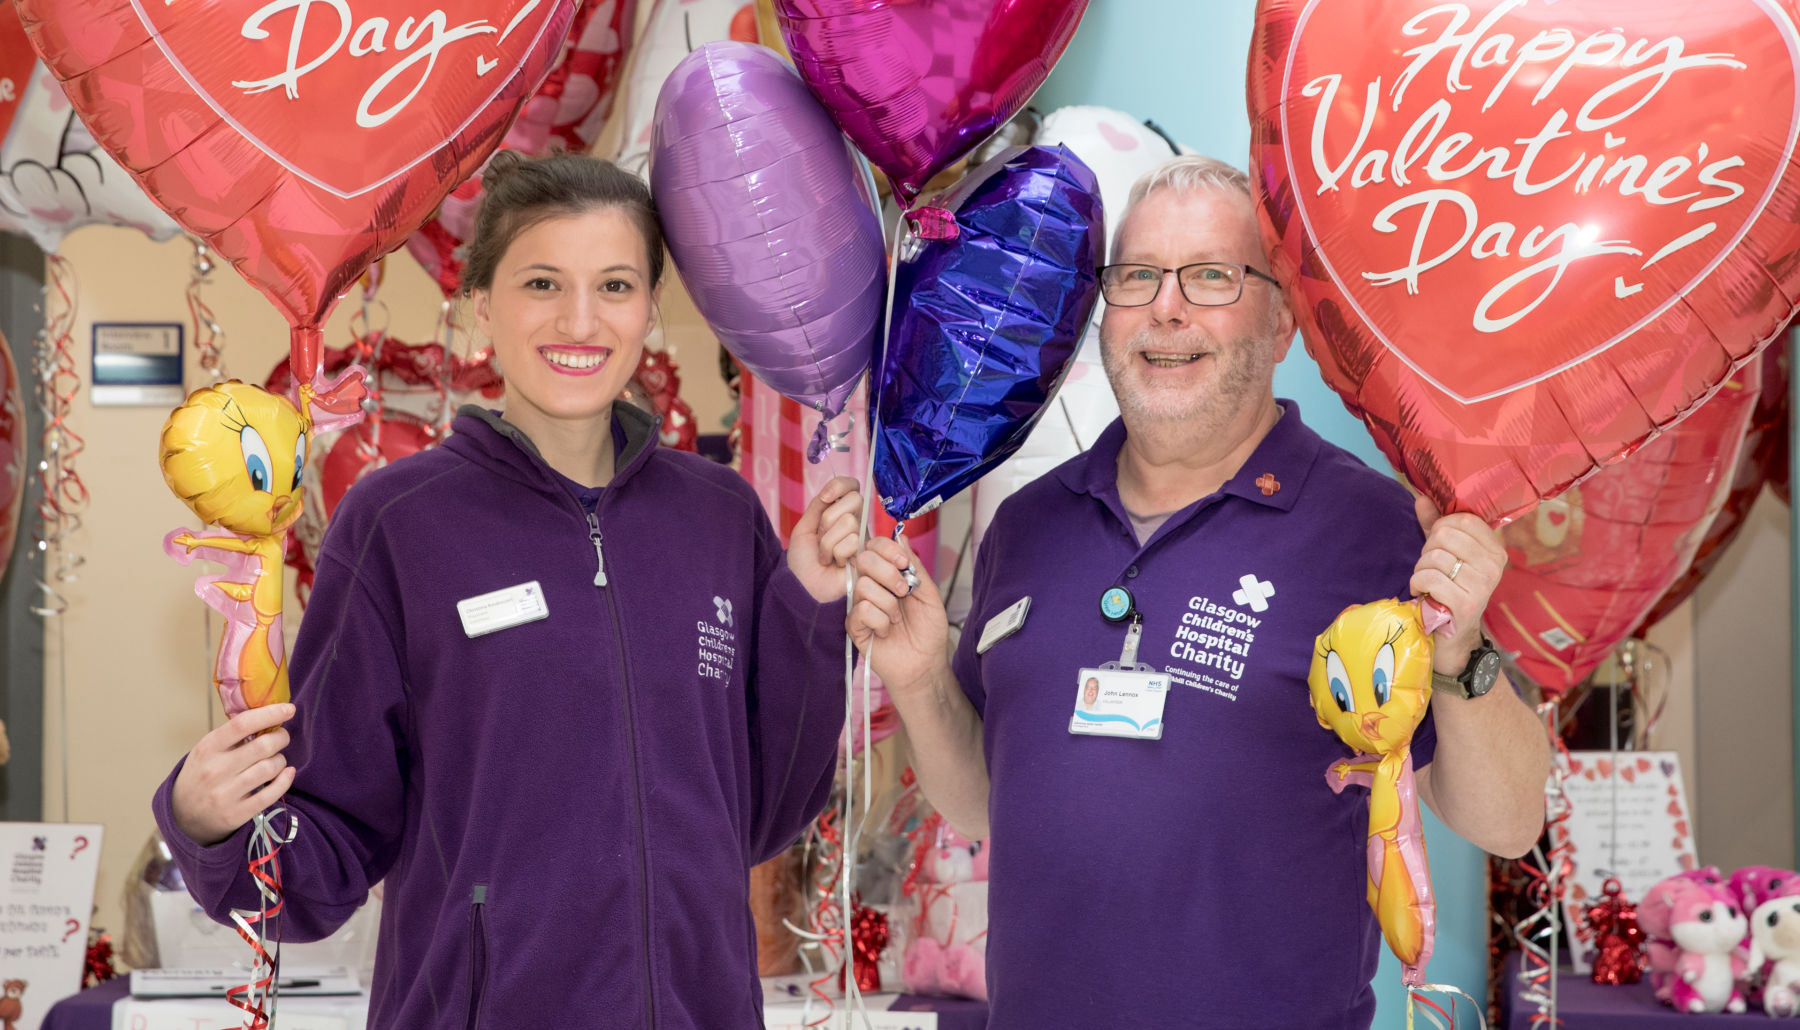 Two volunteers standing smiling at the camera holding large Valentines Day balloons